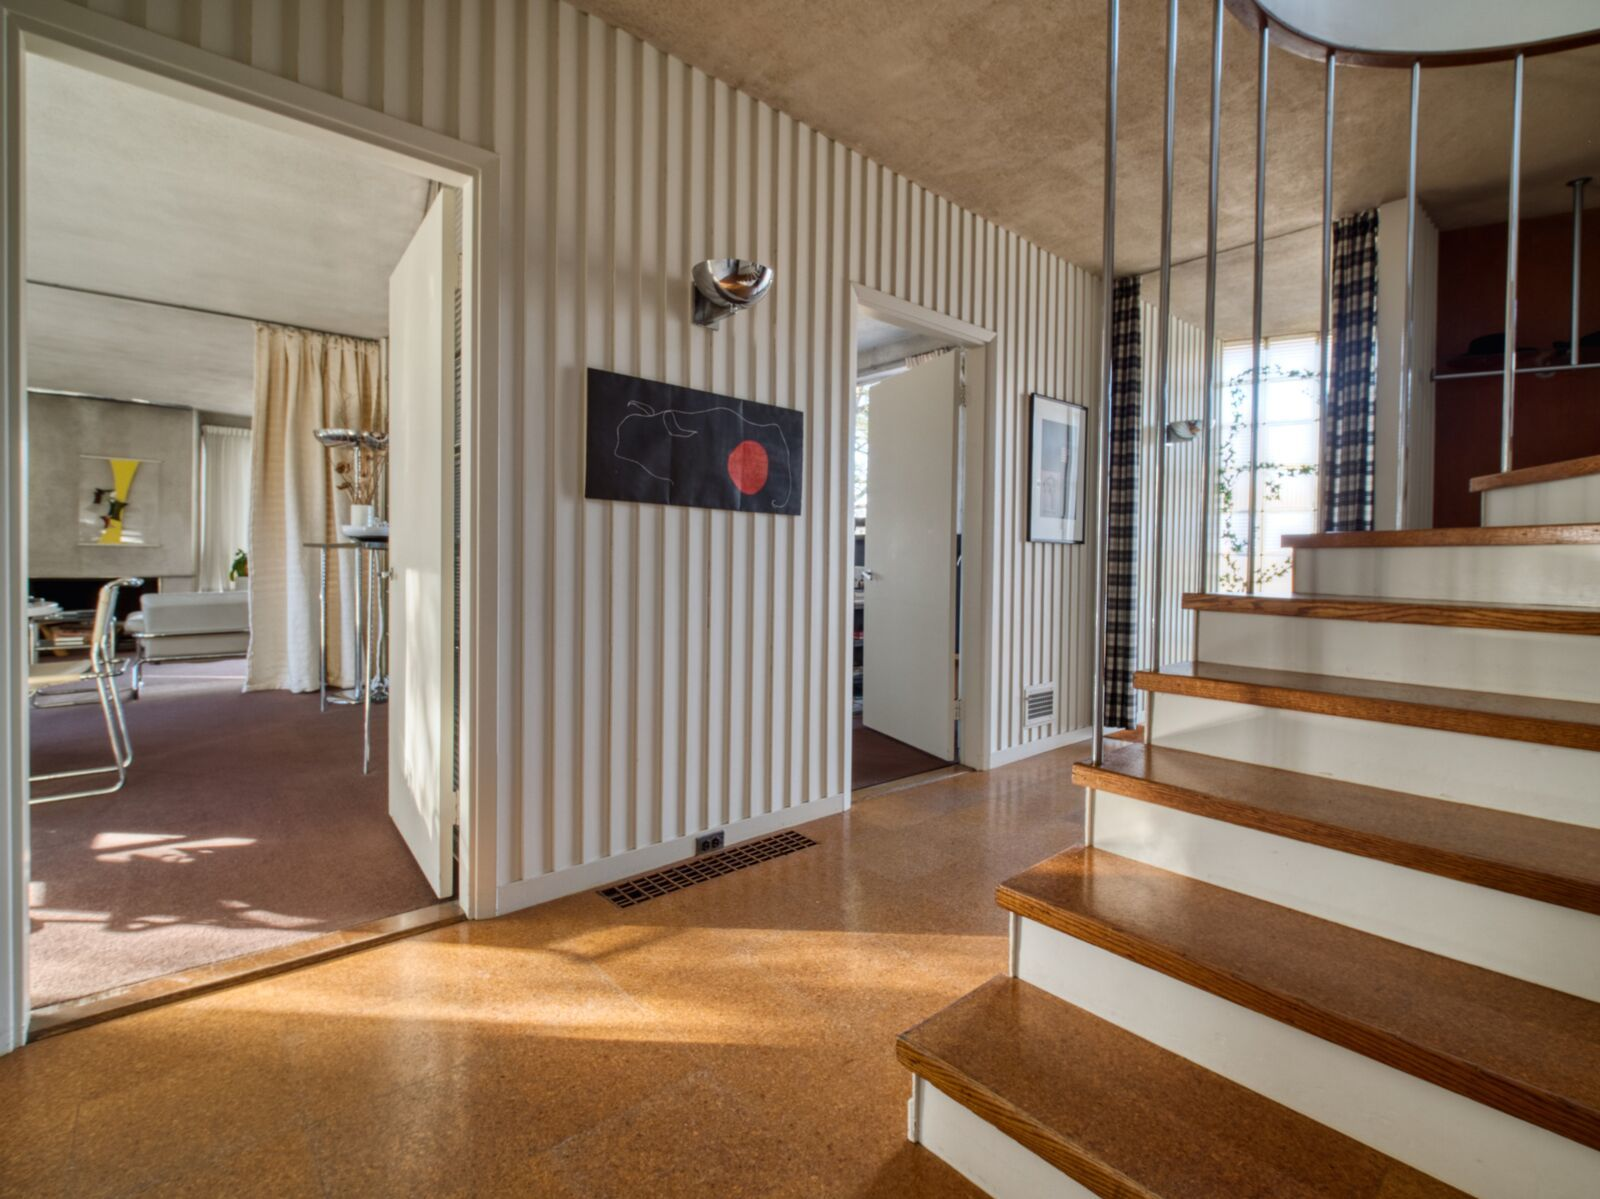 Interior hallway to Gropius House